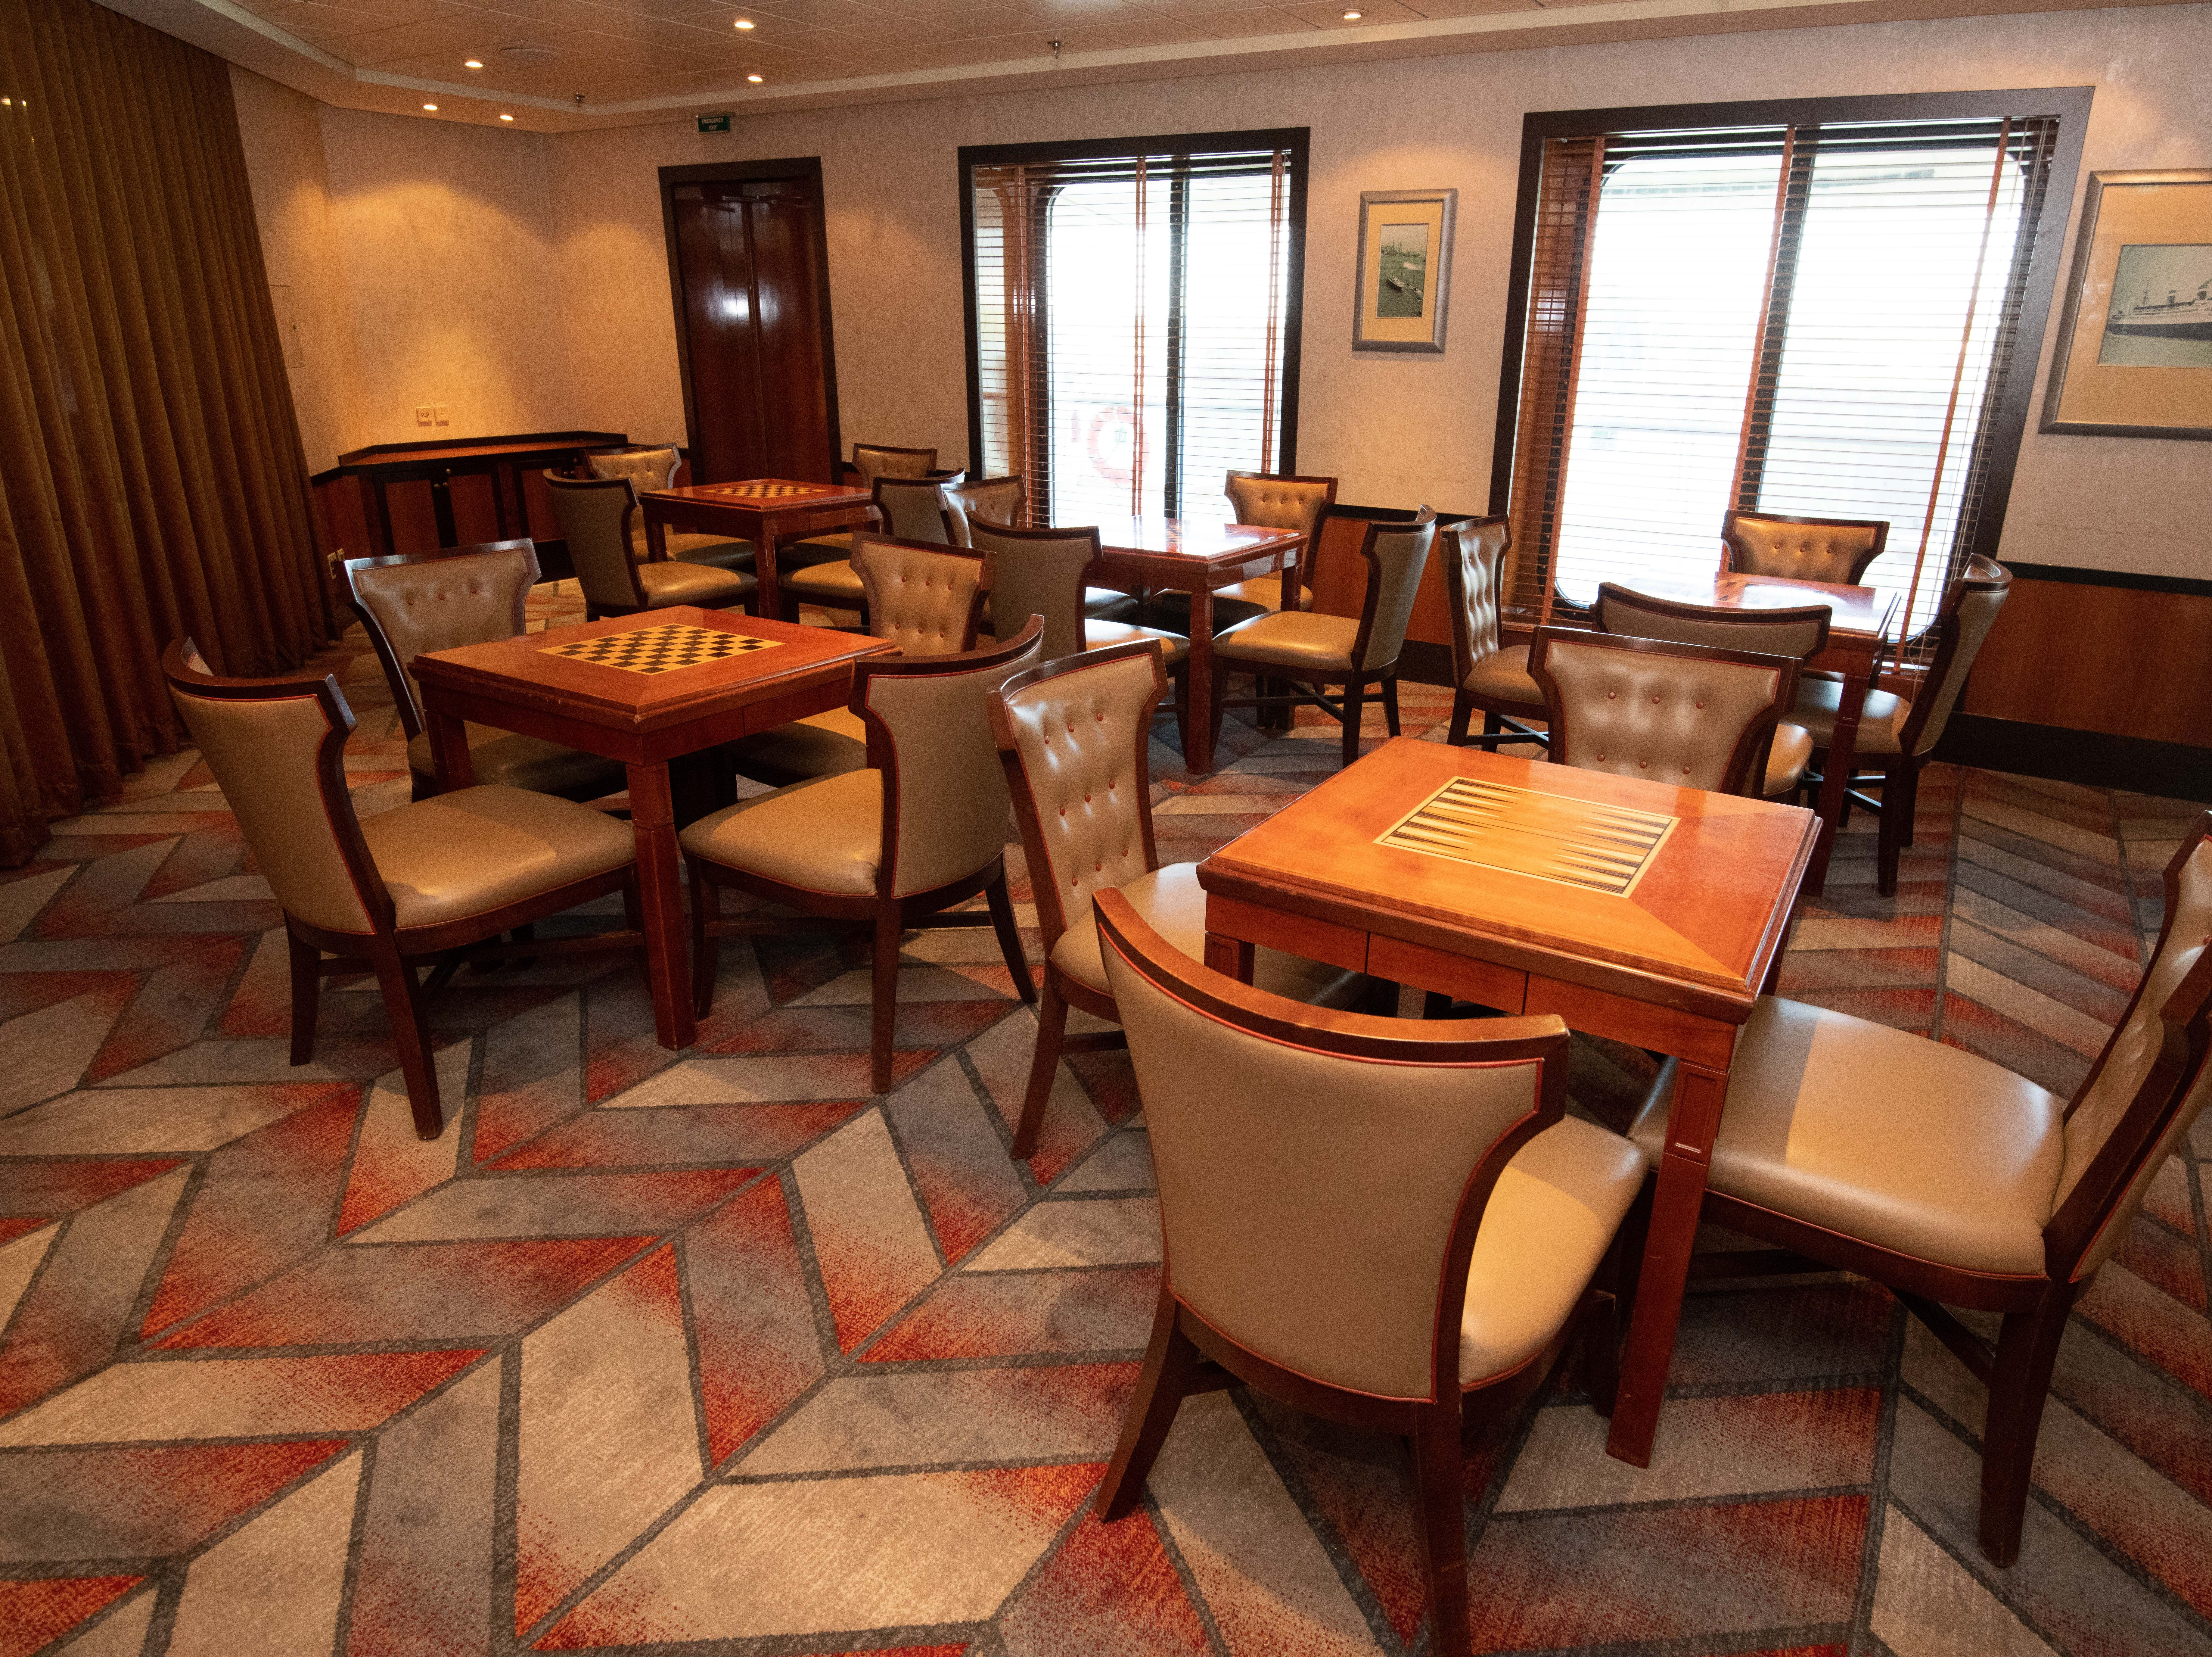 Other public areas on Deck 6 include the Shuffles Card Room, which offers backgammon, checkers and other games.